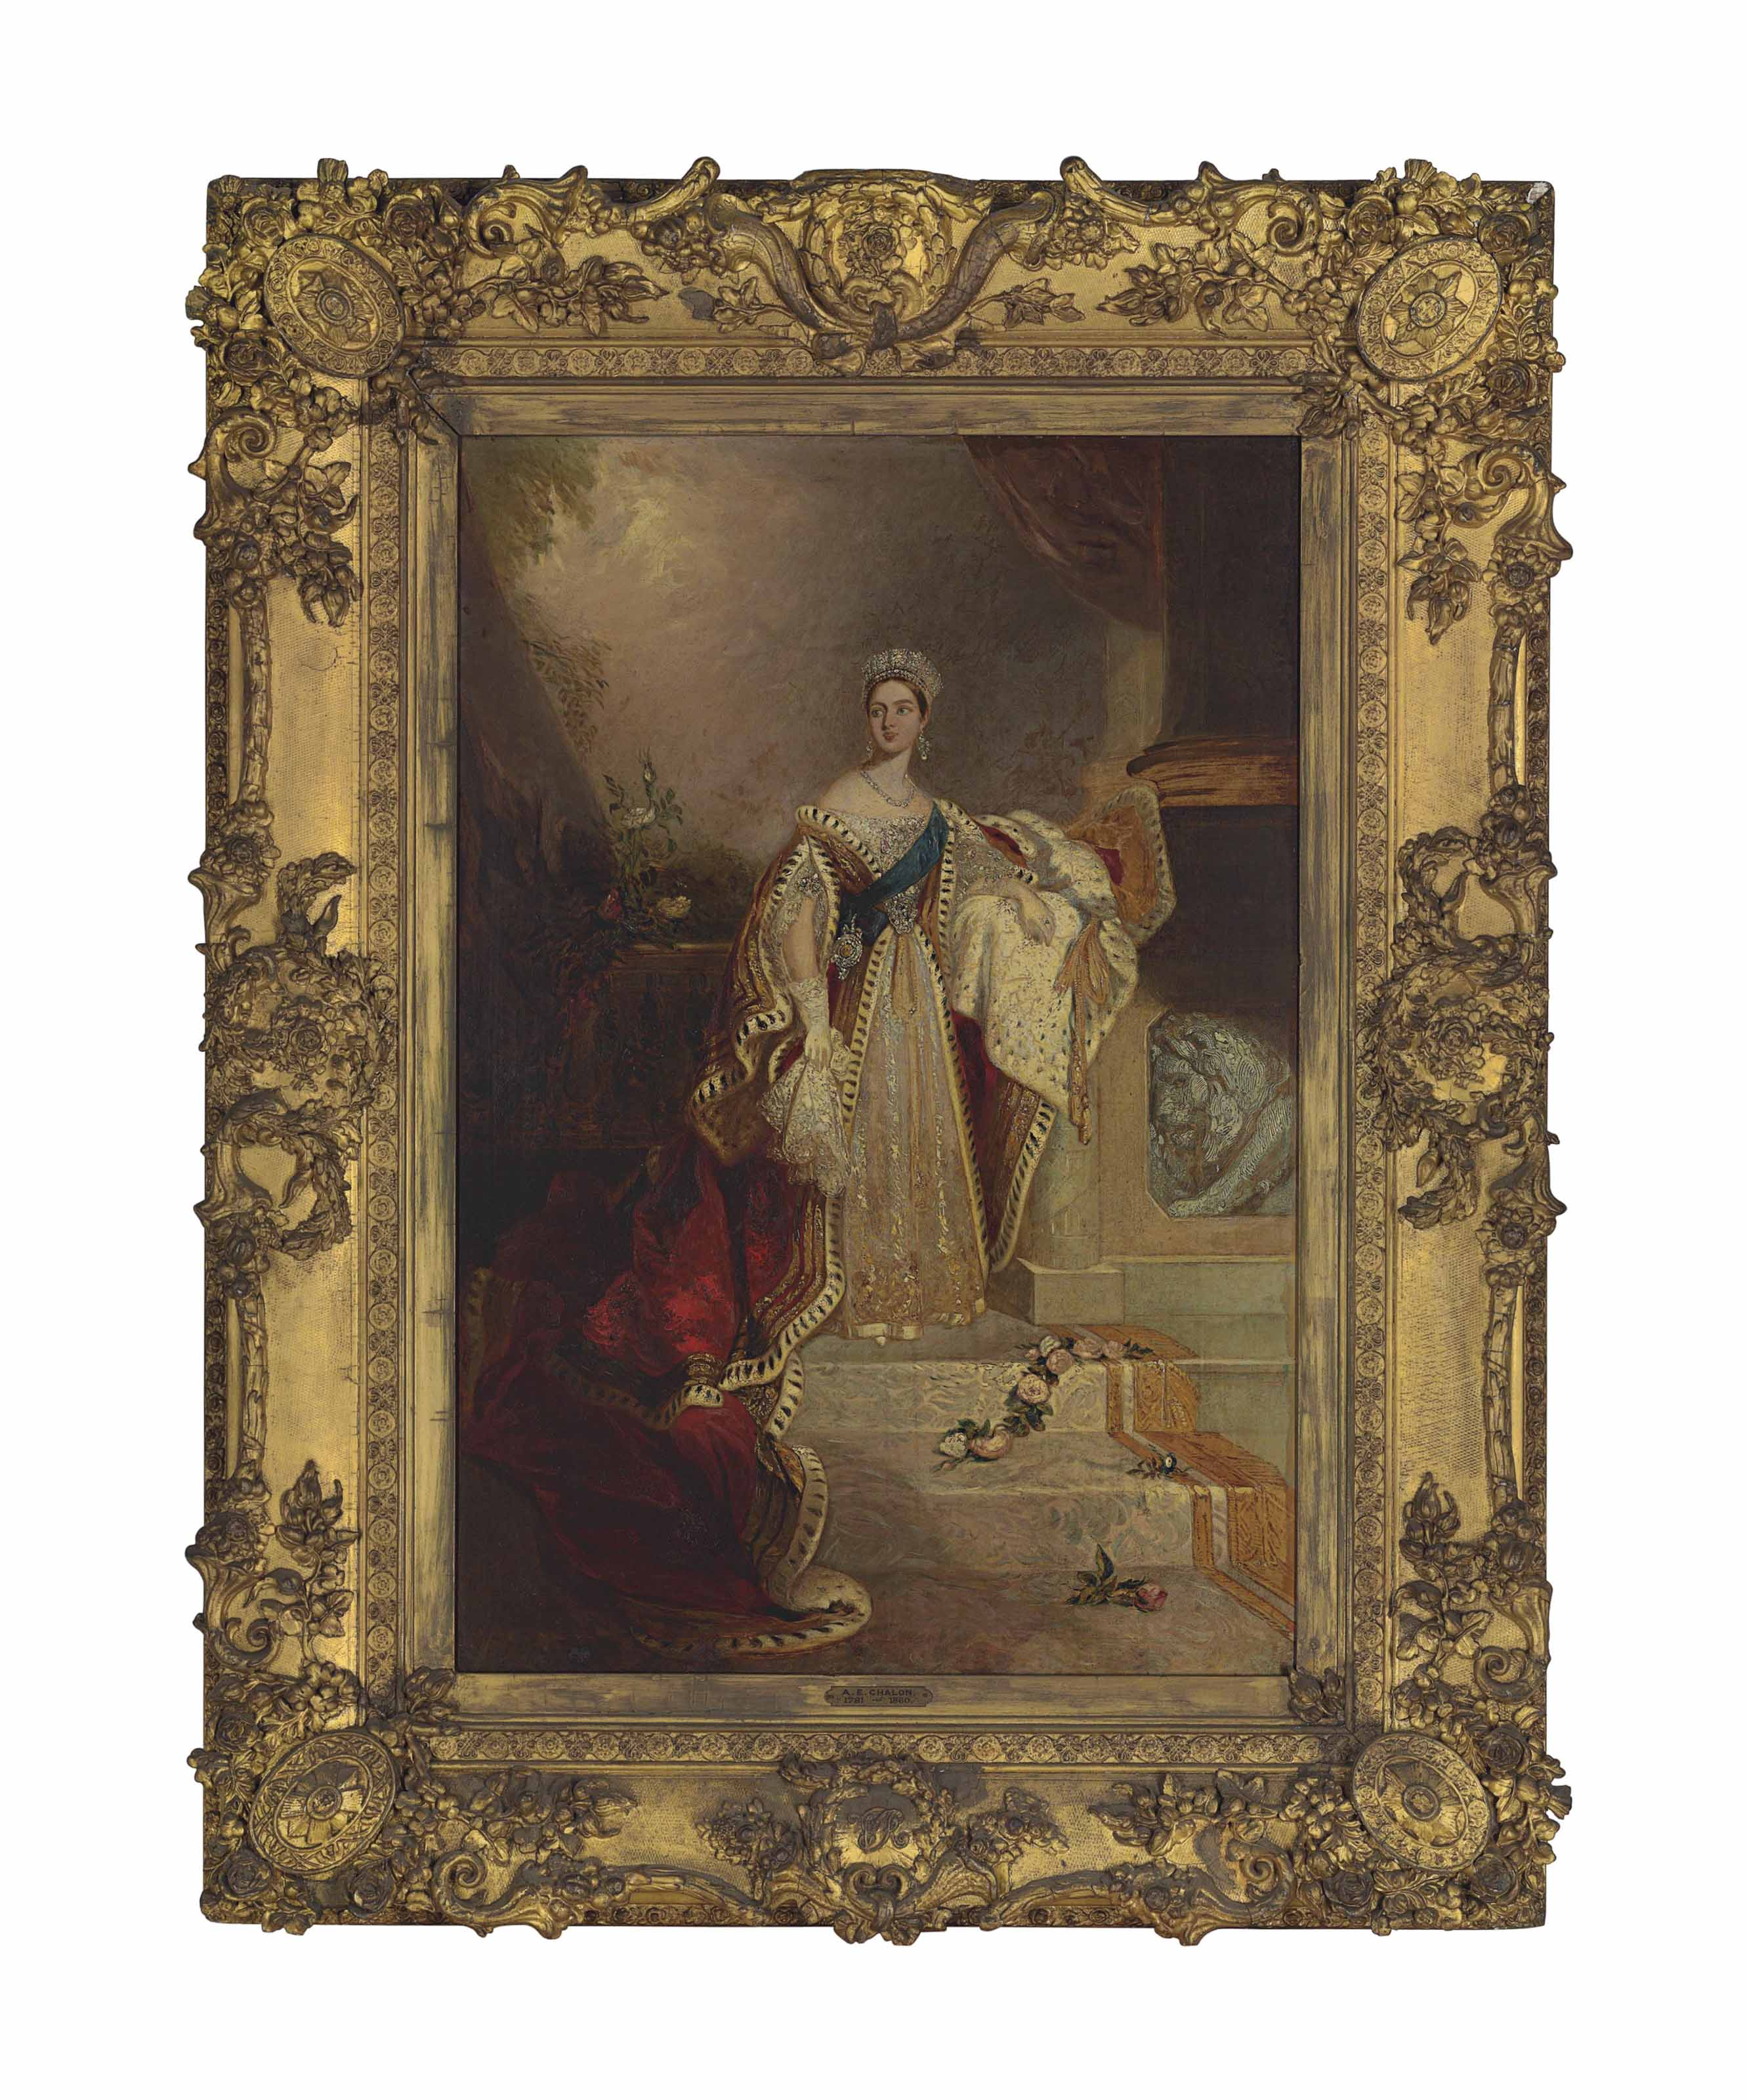 Portrait of Queen Victoria, standing small full-length, in Coronation robes beside a balustrade